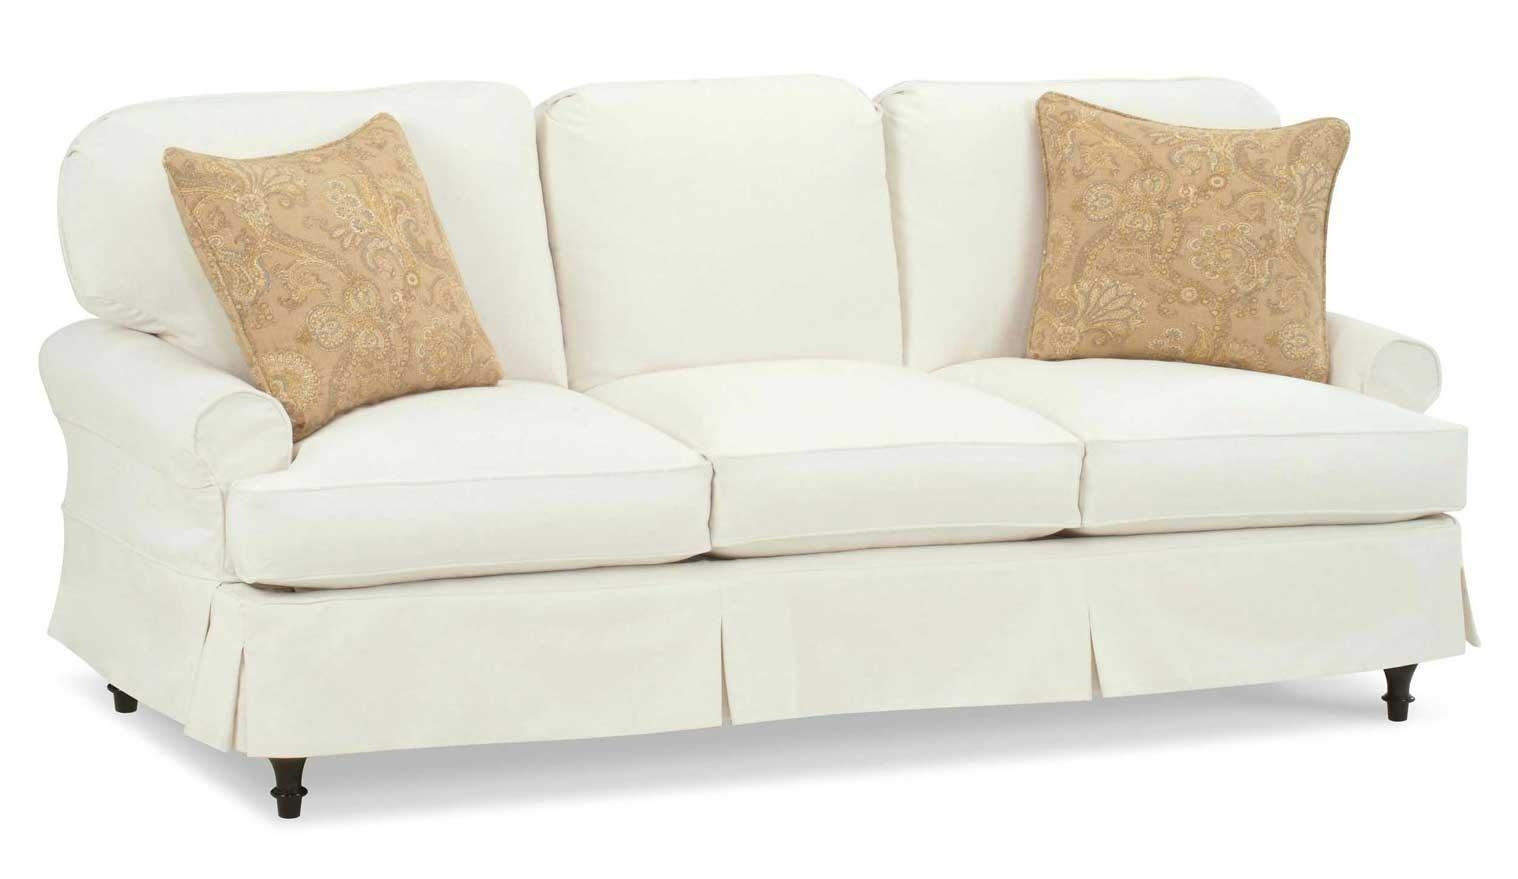 Farmhouse And Country Furniture | Cottage Home® Throughout Country Style Sofas And Loveseats (View 2 of 20)